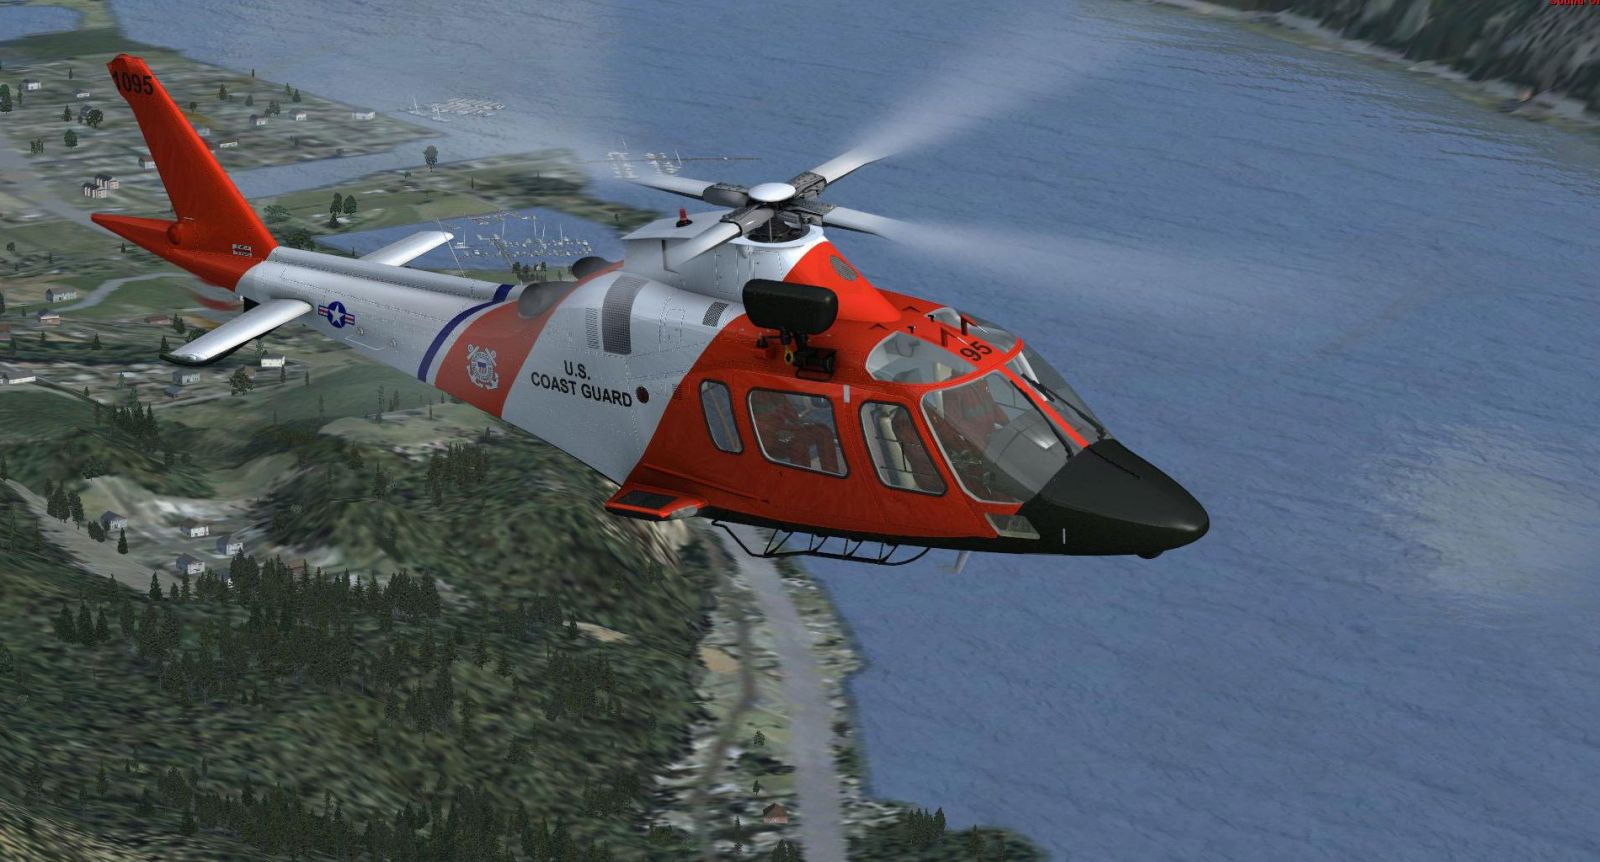 free helicopter flight simulator download with Fsx Uscg Agusta 109 on 3622 Fsx Airbus A300 600r China Southern Airlines And China Eastern Airlines in addition Taylor Lautner Ass furthermore 580 further Front View Flying also 2818 Fsx Boeing 787 8 Norwegian.